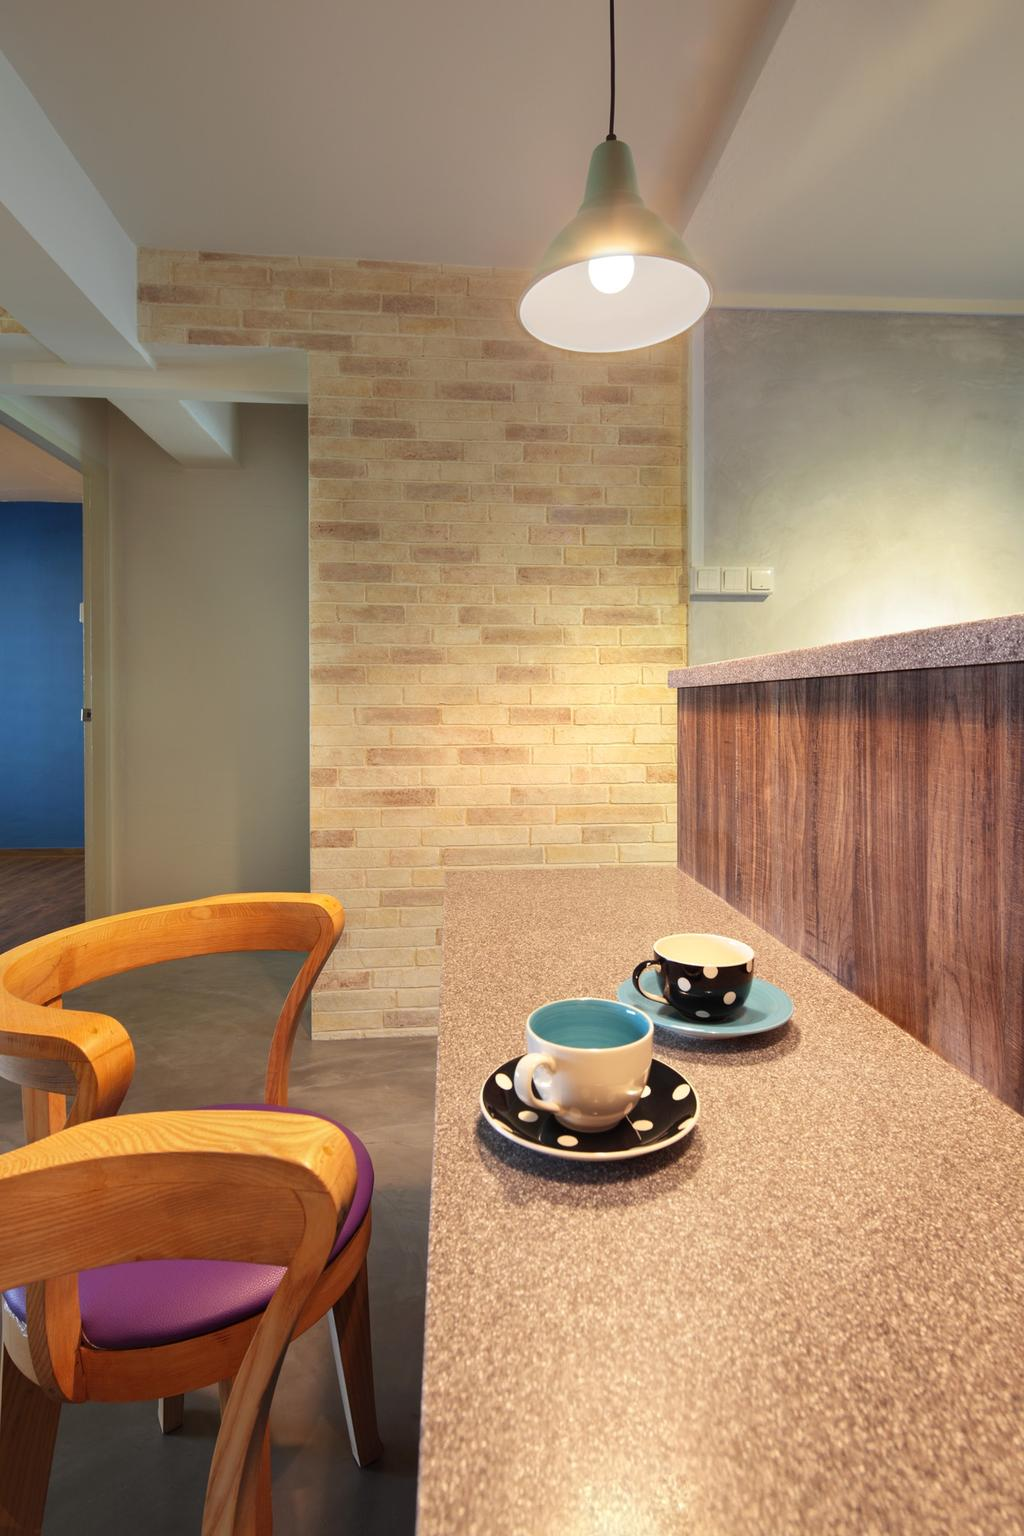 Scandinavian, HDB, Dining Room, Marine Crescent, Interior Designer, Space Define Interior, Bar Coounter, Barstools, Chair, Table, Wood Laminate, Wood, Laminate, Brick Wall, Raw, Hanging Light, Lighting, Furniture, Coffee Cup, Cup, Pottery, Saucer